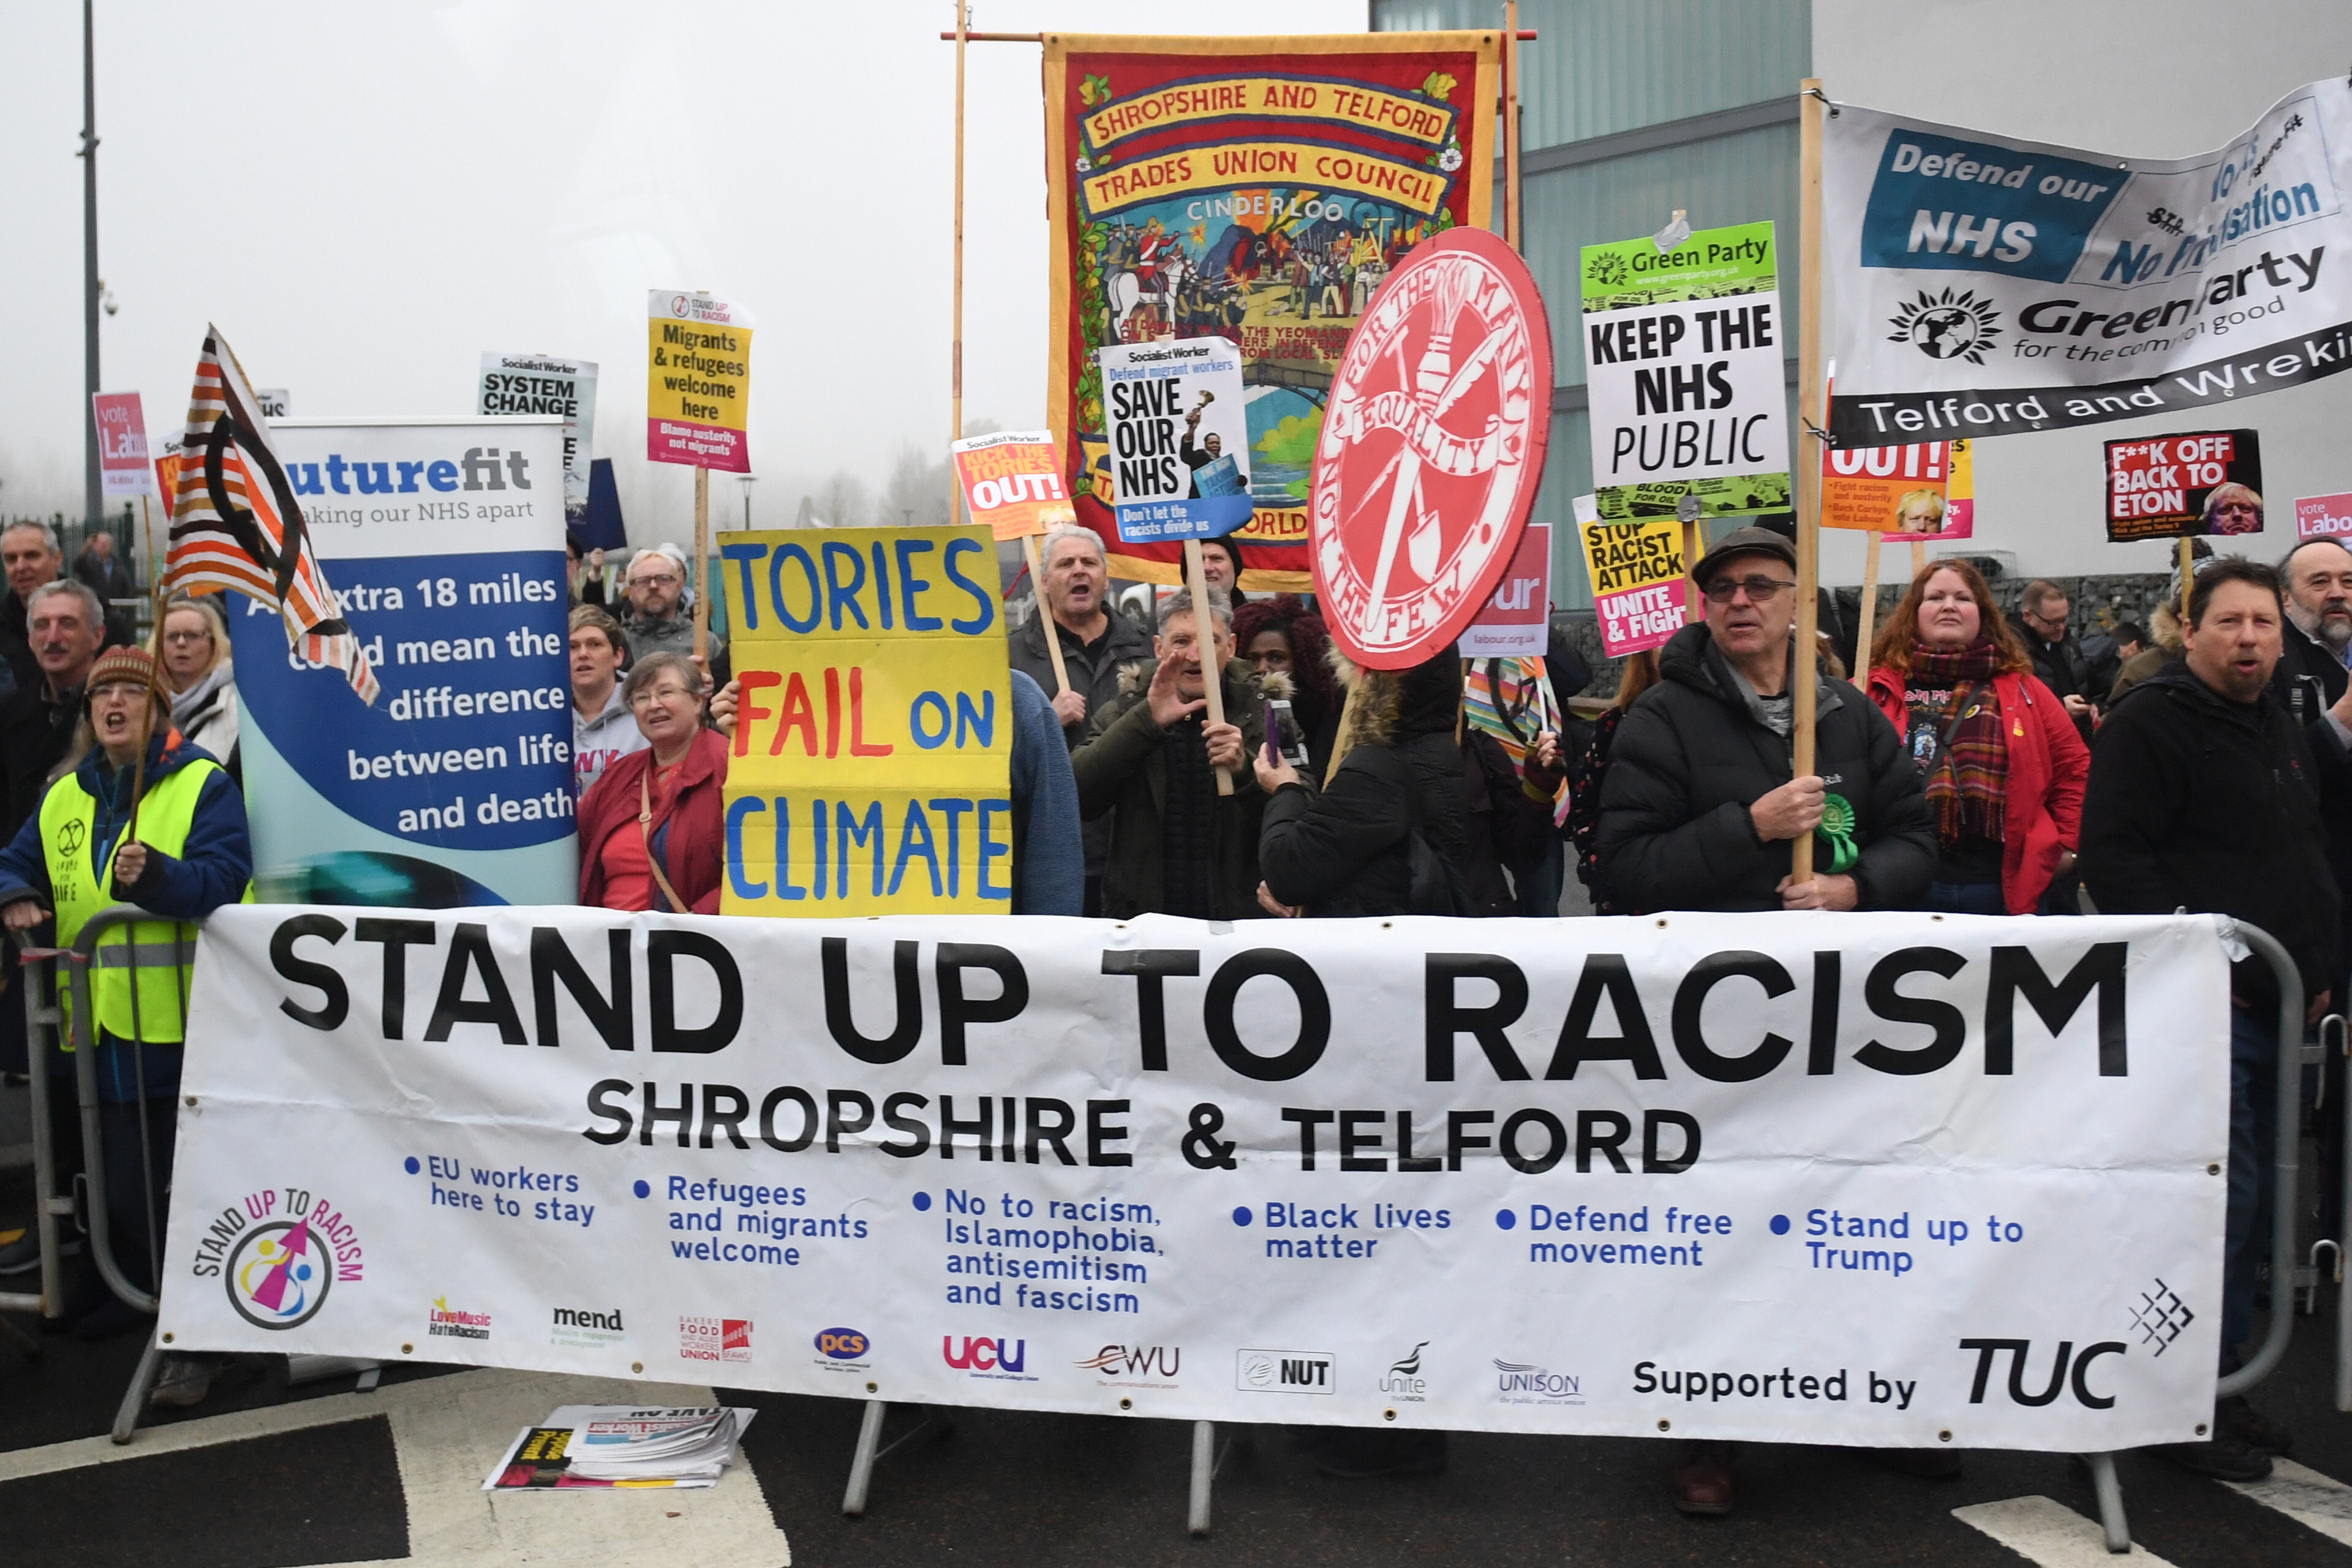 Protesters wait for the arrival of Prime Minister Boris Johnson ahead of the launch of his party's manifesto at Telford International Centre in Telford, West Midlands.